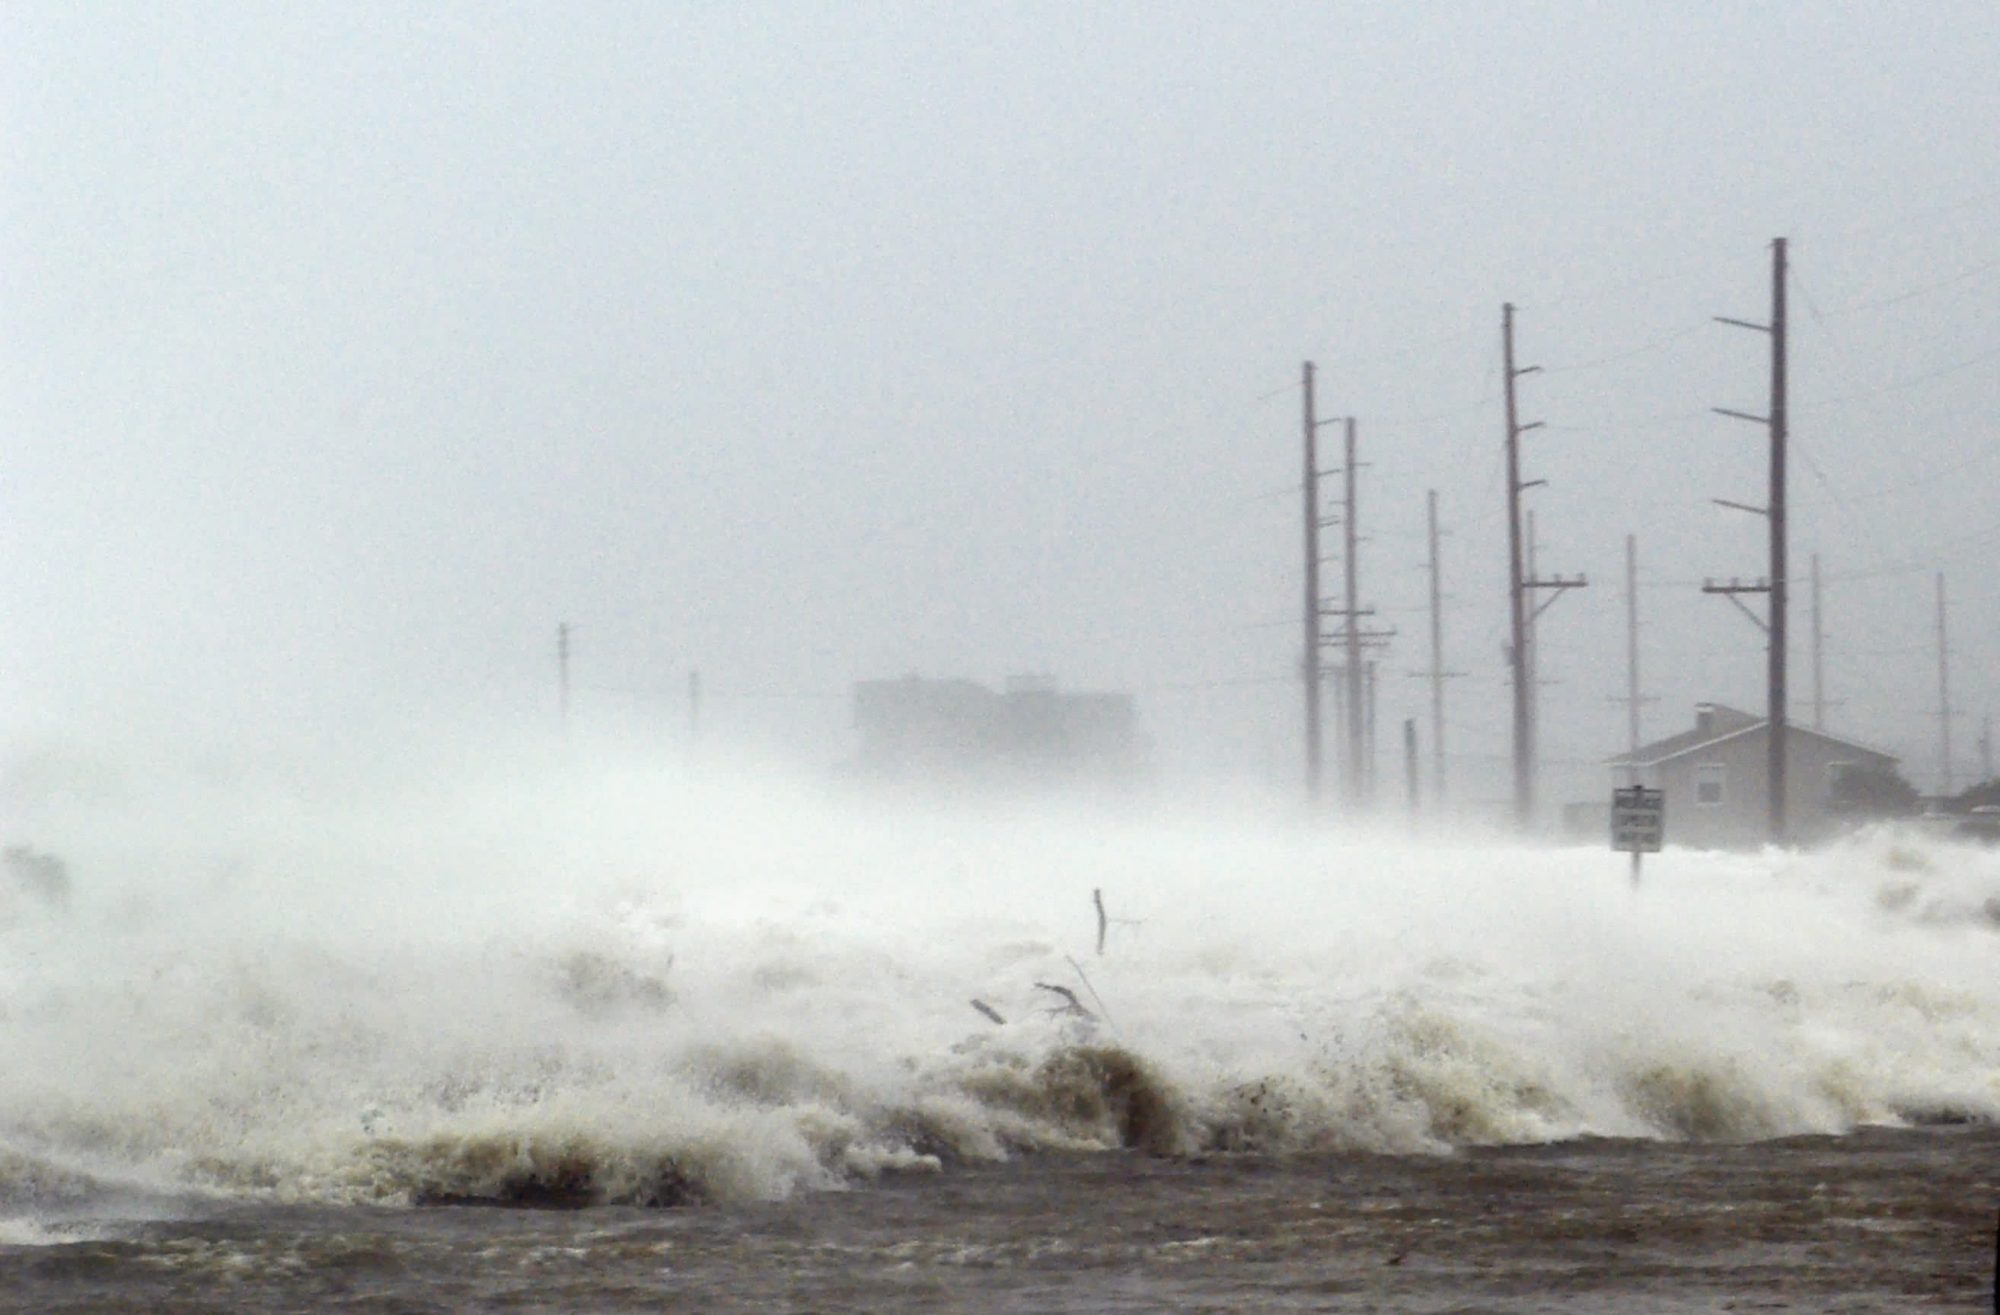 On September 18, 2003, Hurricane Isabel hit the North Carolina coast as a Category 2 hurricane. It severely damaged North Carolina and Virginia and went as far north as Pennsylvania, becoming extratropical before moving into Canada. Cost: $5.37 billion